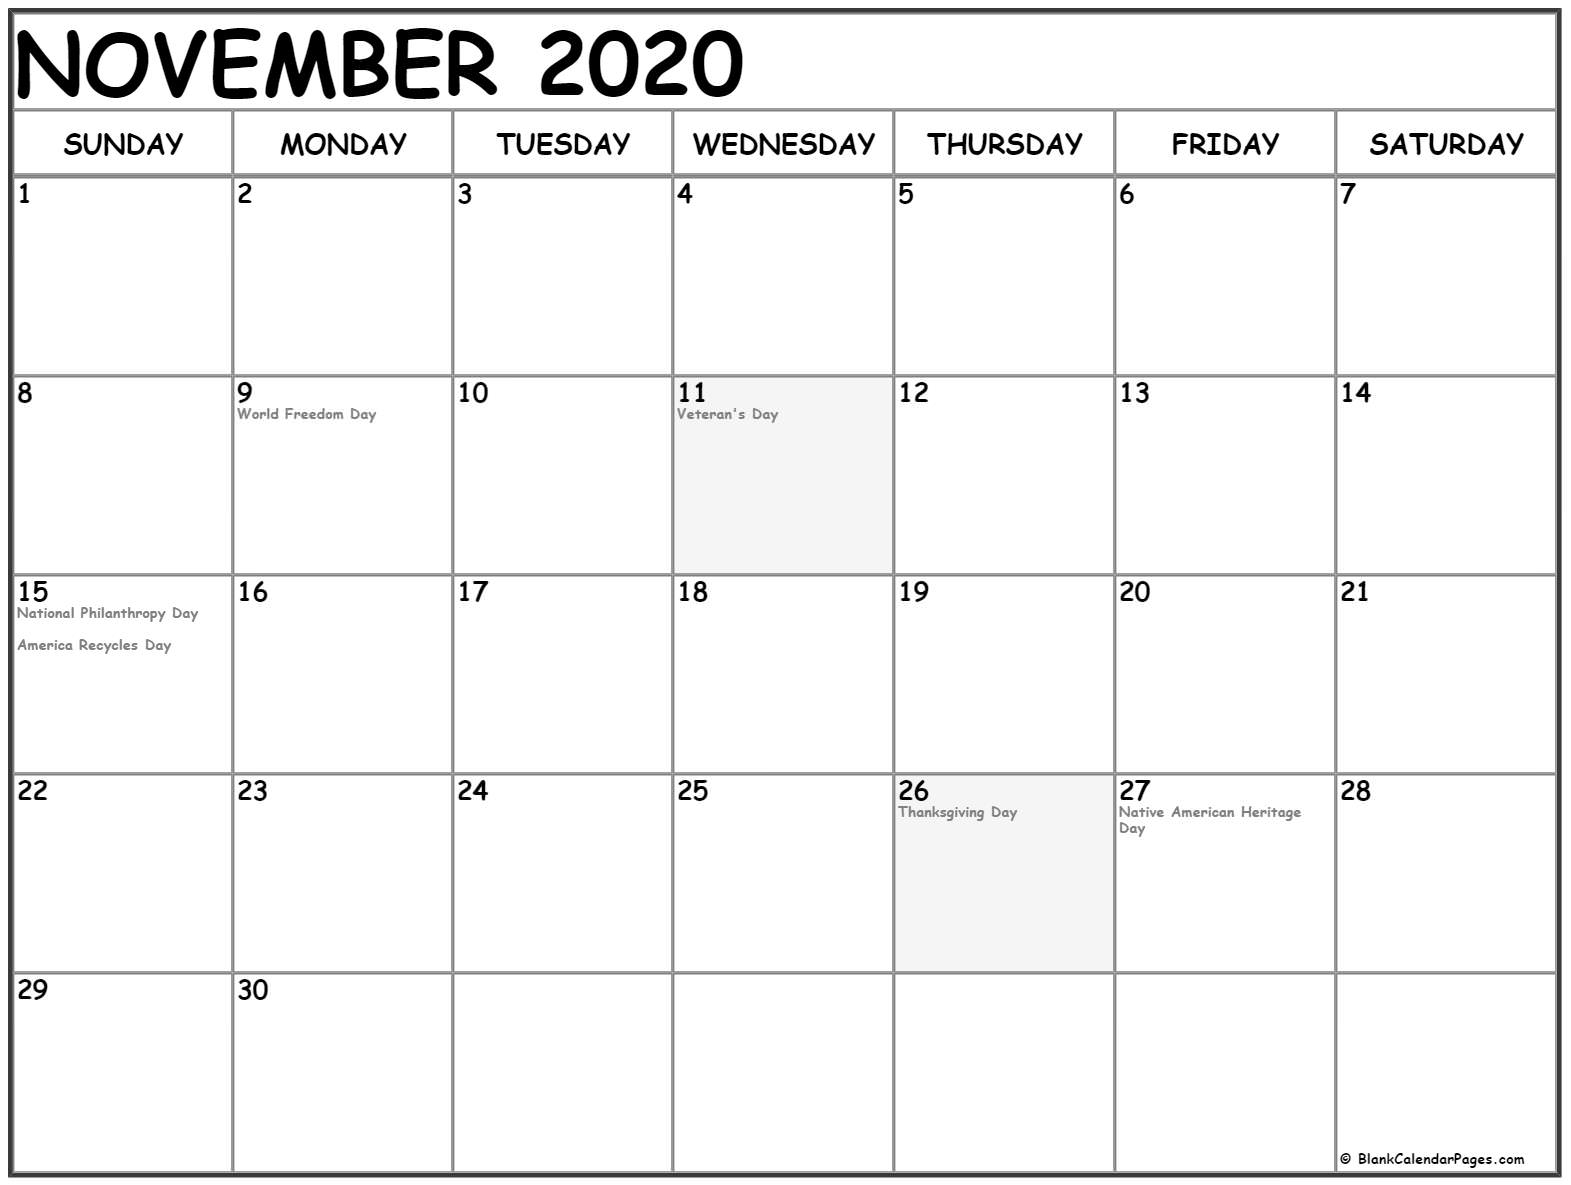 November 2020 Calendar With Holidays